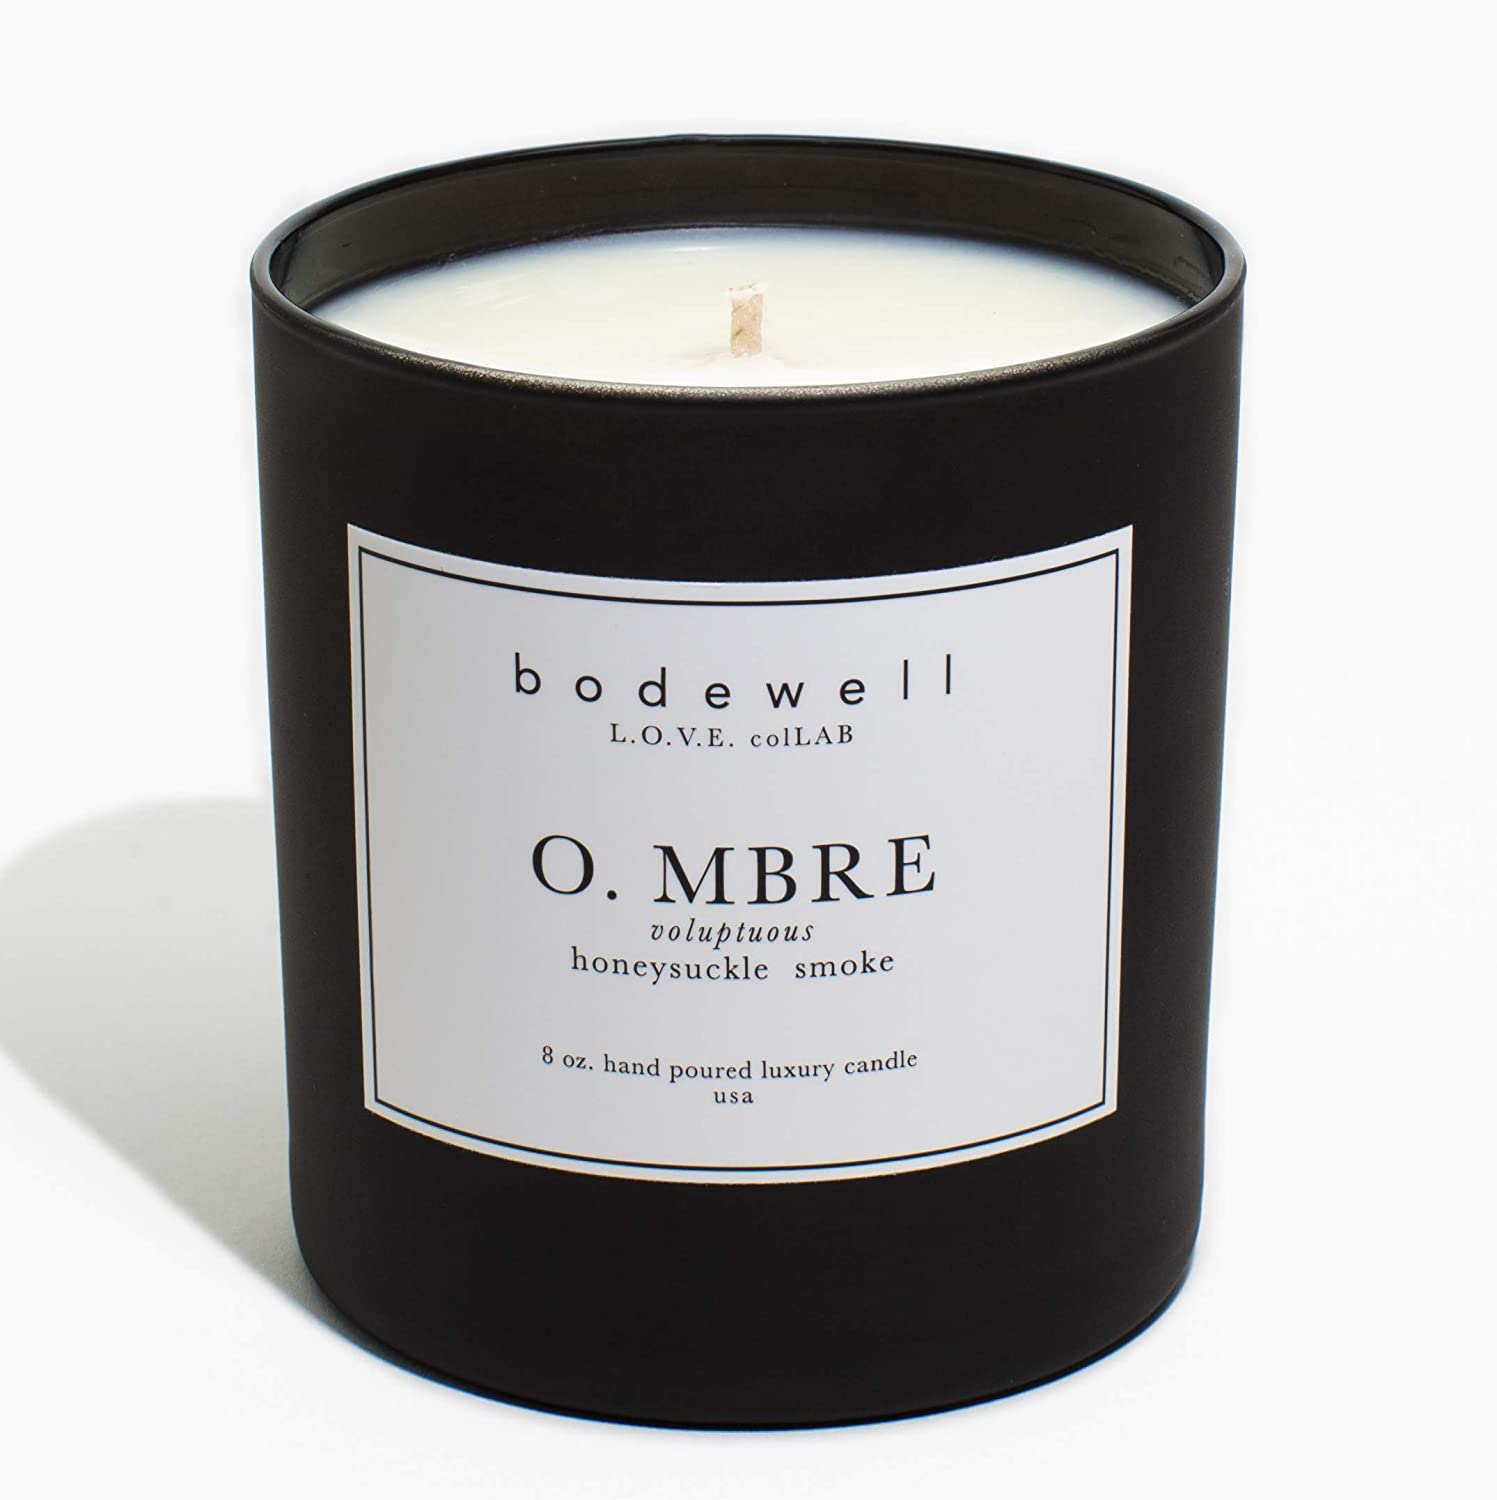 Bodewell Home O.MBRE Candle 8 oz All Natural Premium Scented Luxury Candle - Honeysuckle, Smoke